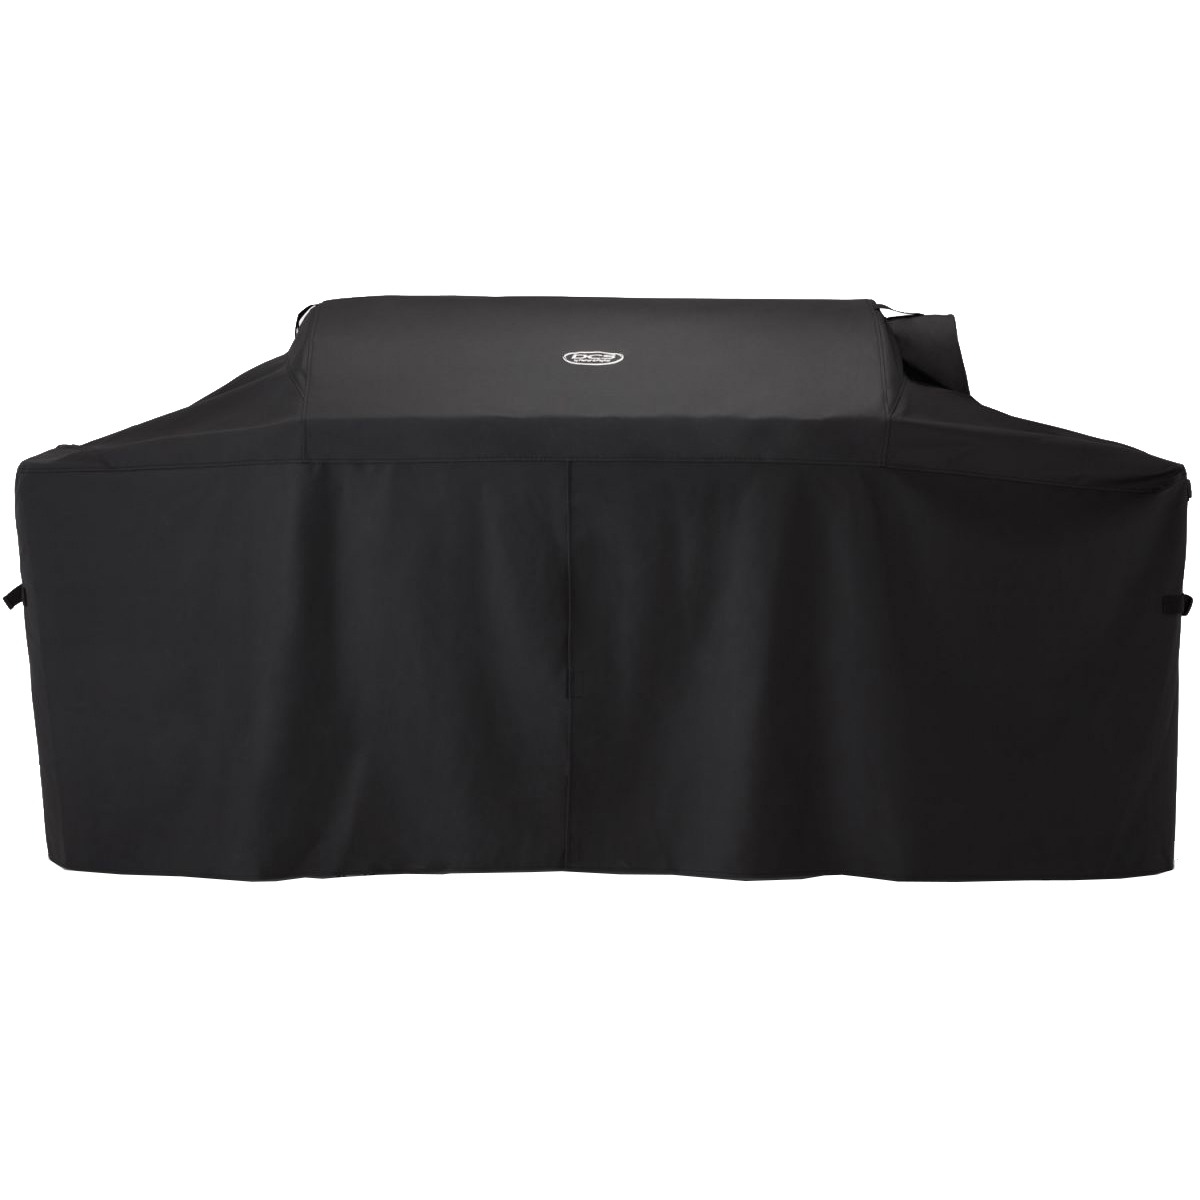 DCS Grill Cover for 36 inch Built In Grills